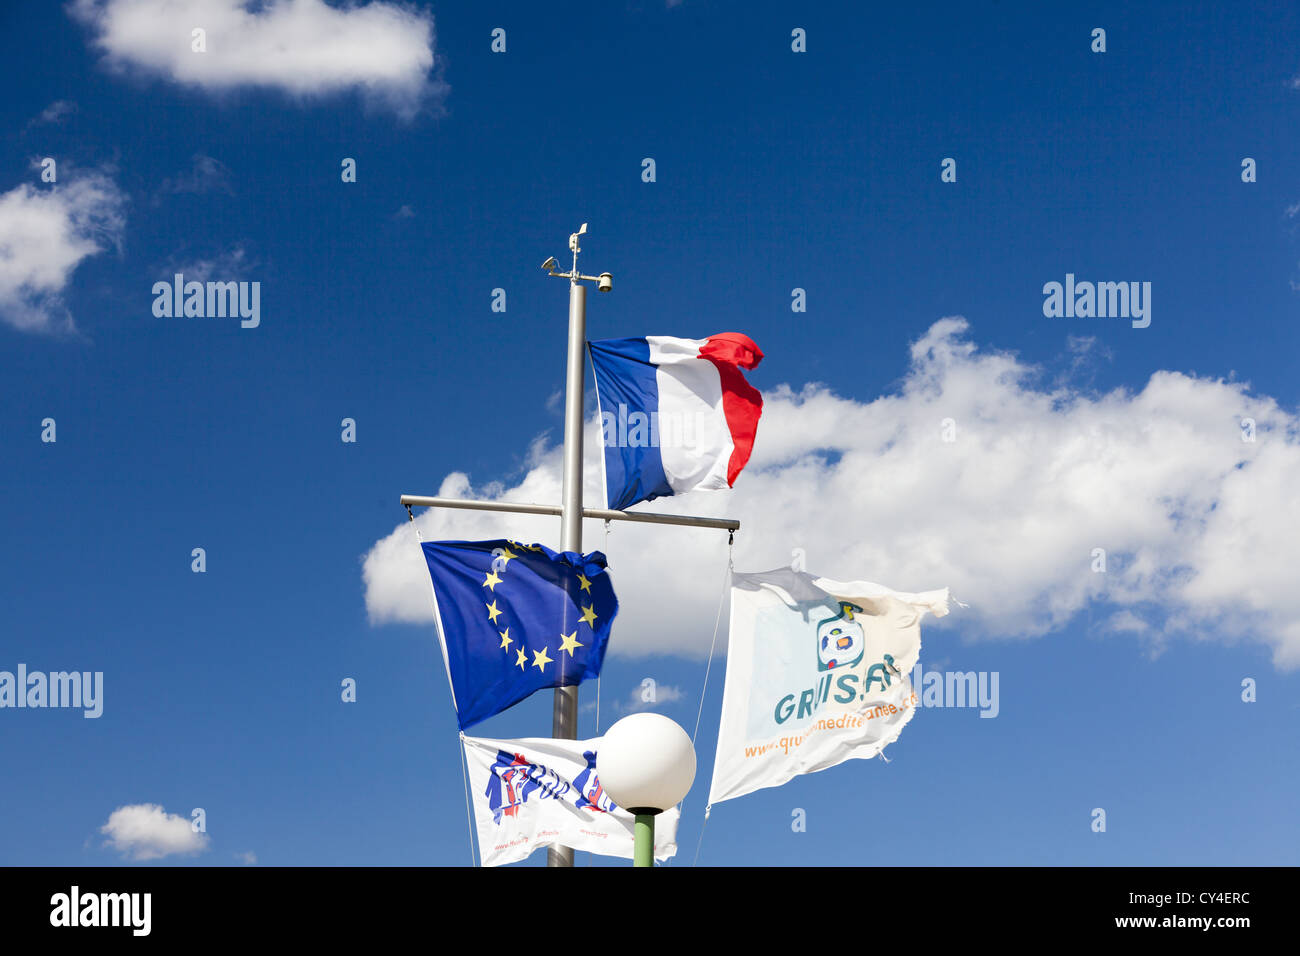 Flagpole in the Marina Gruissan in front of a blue sky - Stock Image